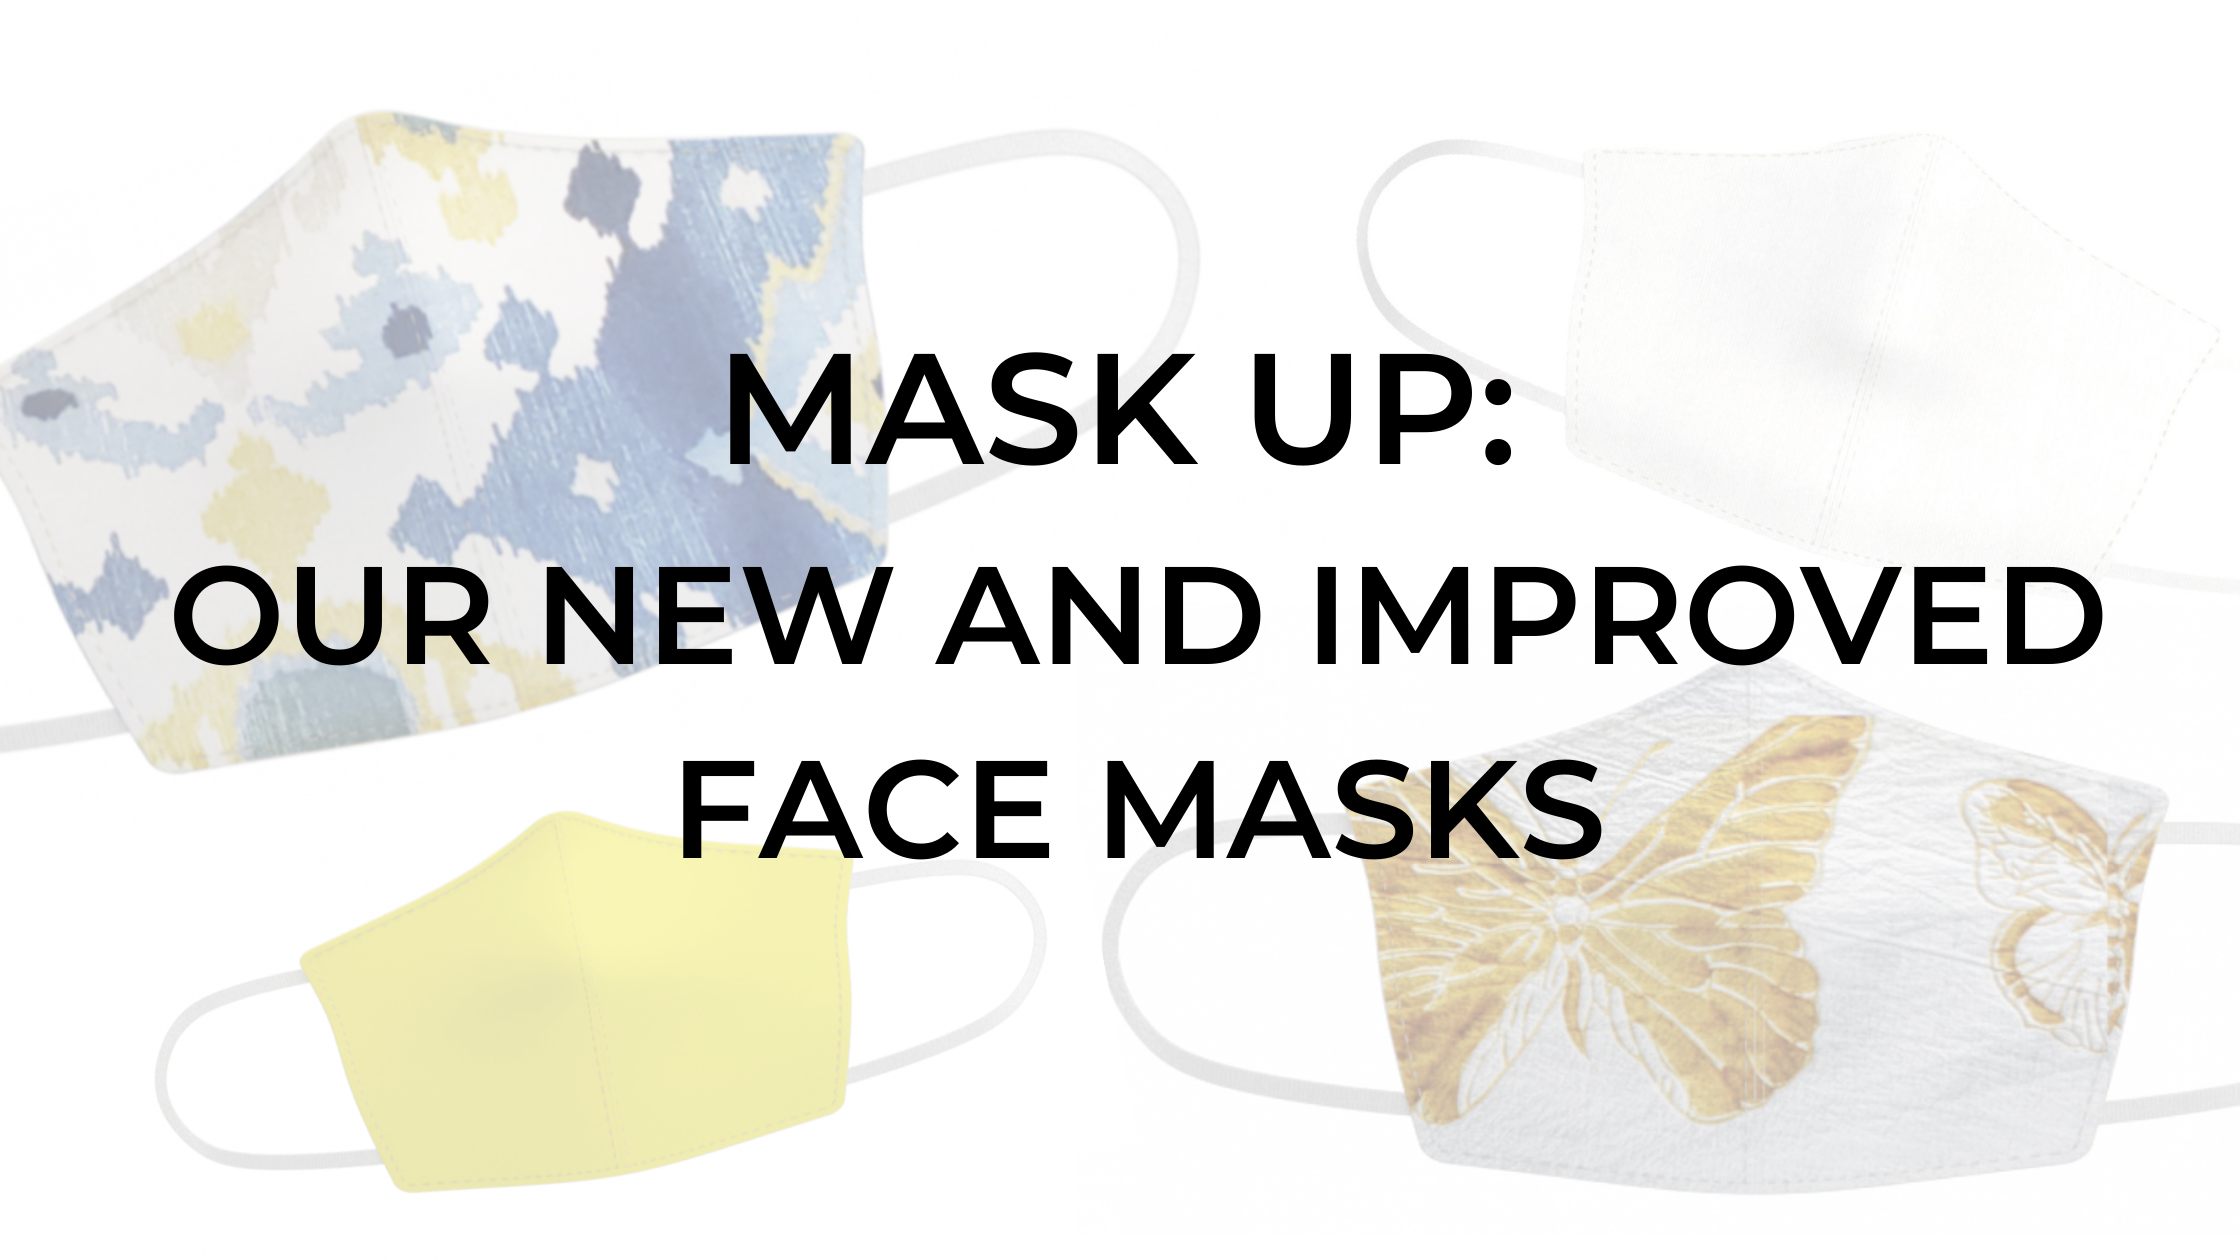 Mask Up: Our New and Improved Face Masks